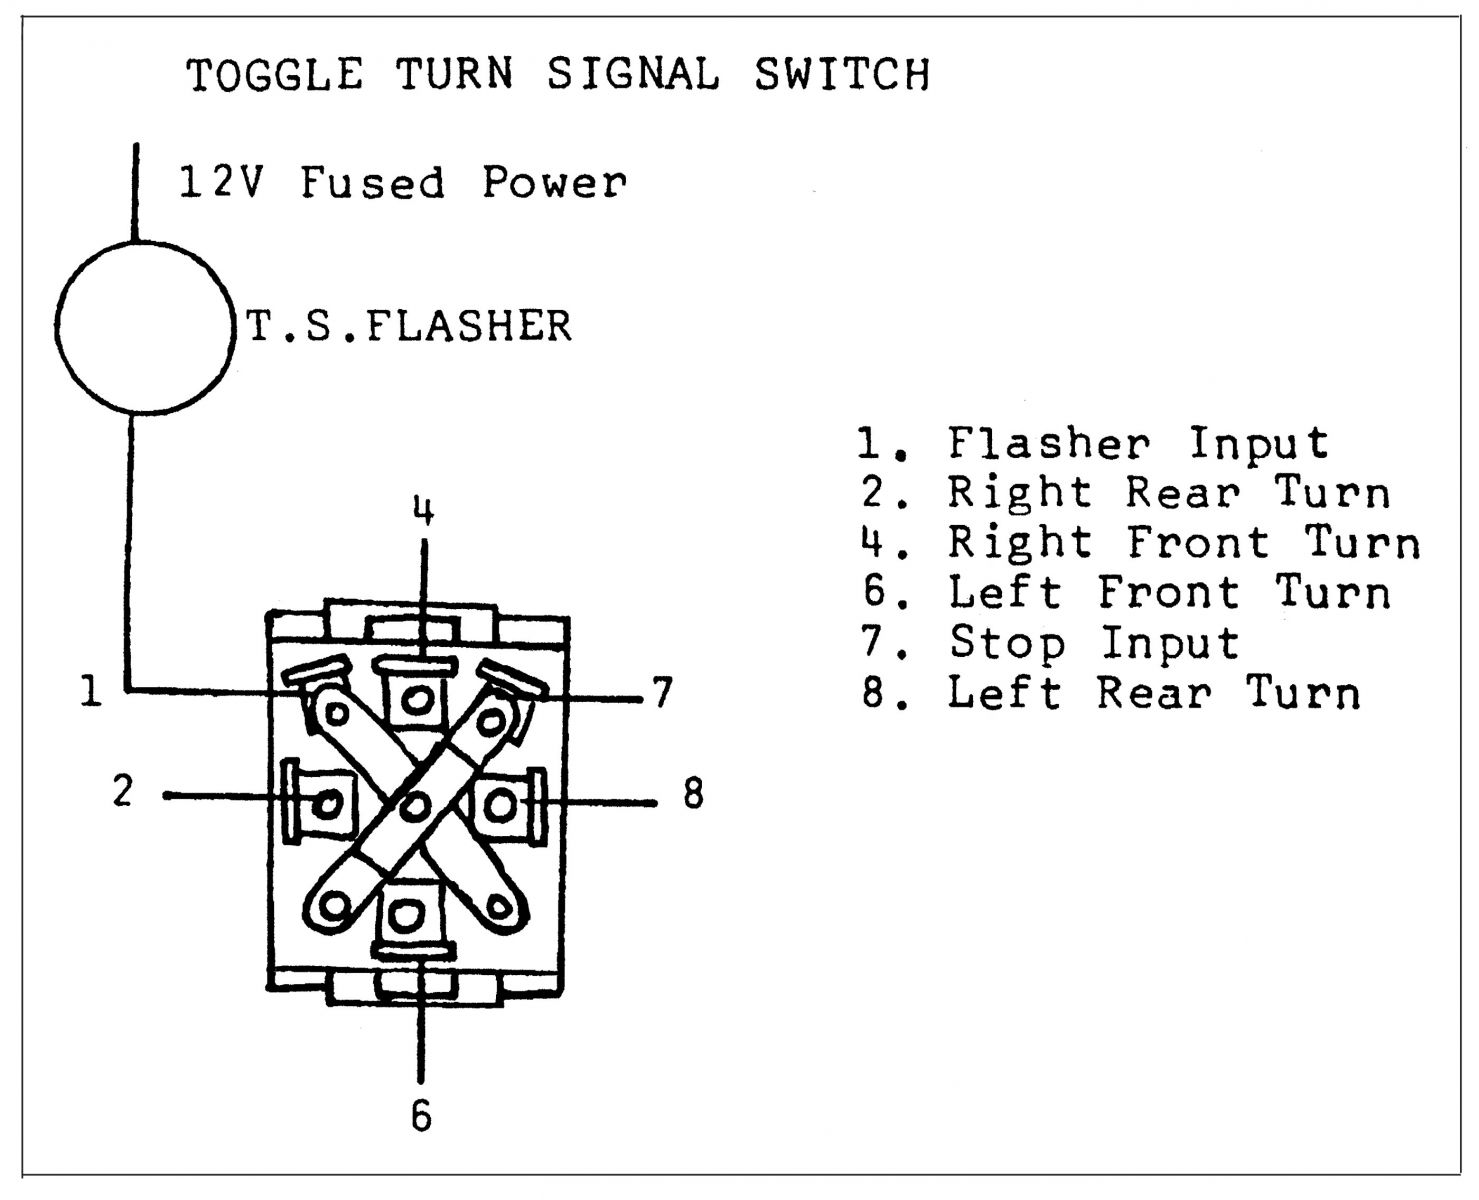 6 Wire Turn Signal Switch Wiring Schematic Diagram Libraries Turnflex Yankee 730 Signals For Early Hot Rods Hotrod Hotlinemy Vehicle Has A Gm Style Fuse Block With The Flasher Circuit Included So I Just Ran Power Purple To